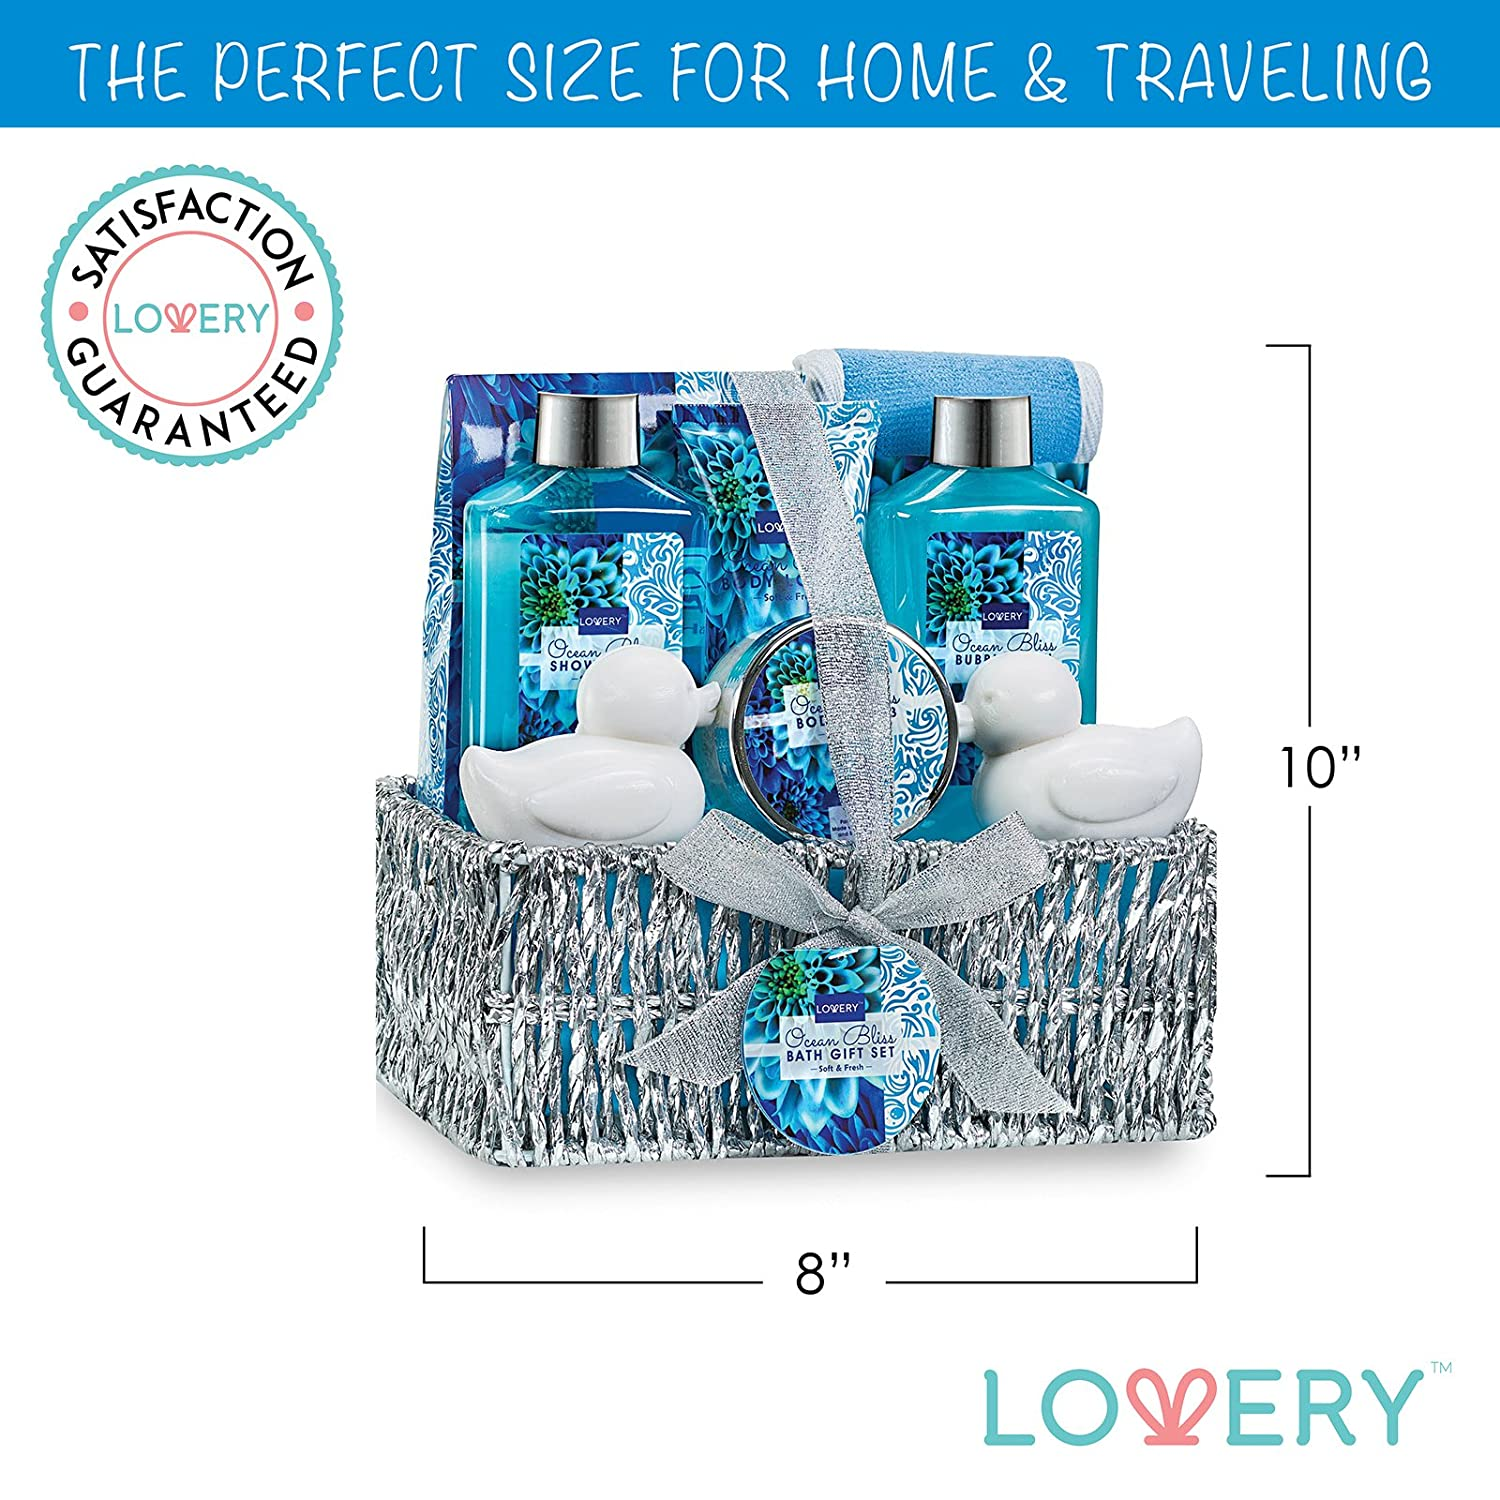 Amazon.com : Home Spa Gift Basket in Heavenly Ocean Bliss Scent - 9 Piece Bath & Body Set With Shower Gel, Bubble Bath, Salts, Lotions & more!